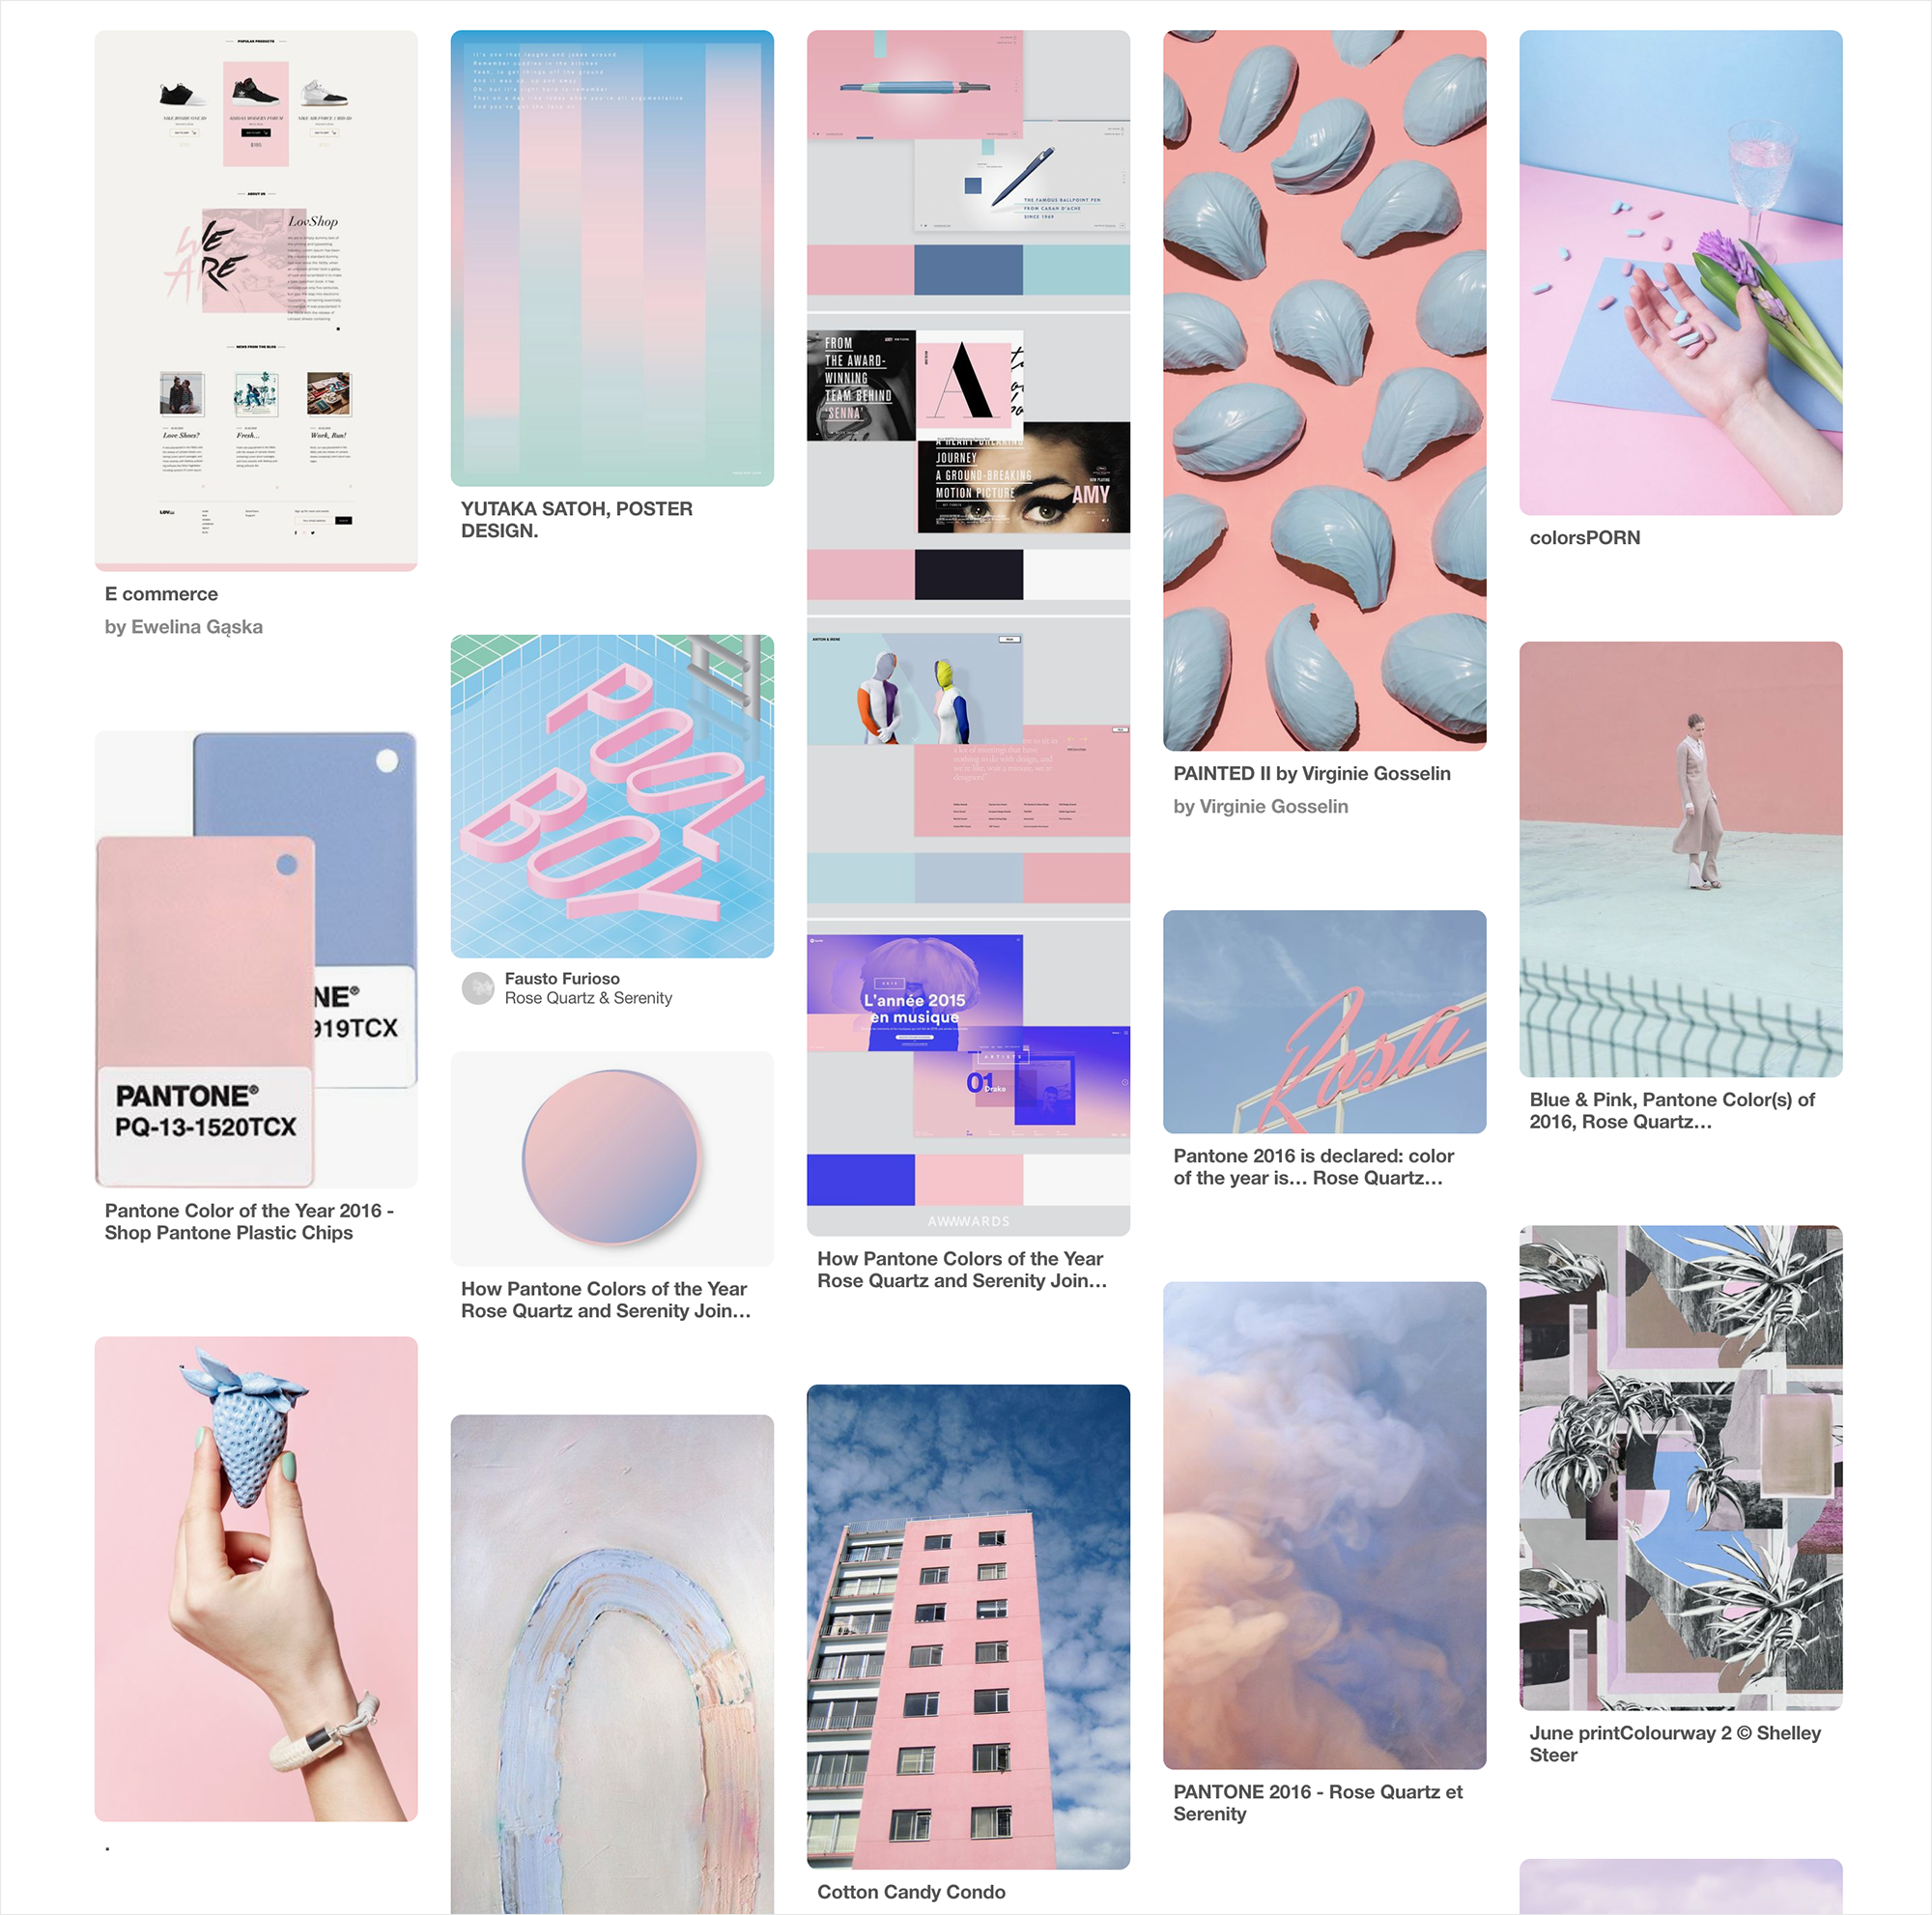 pantone color of the year rose quartz and serenity